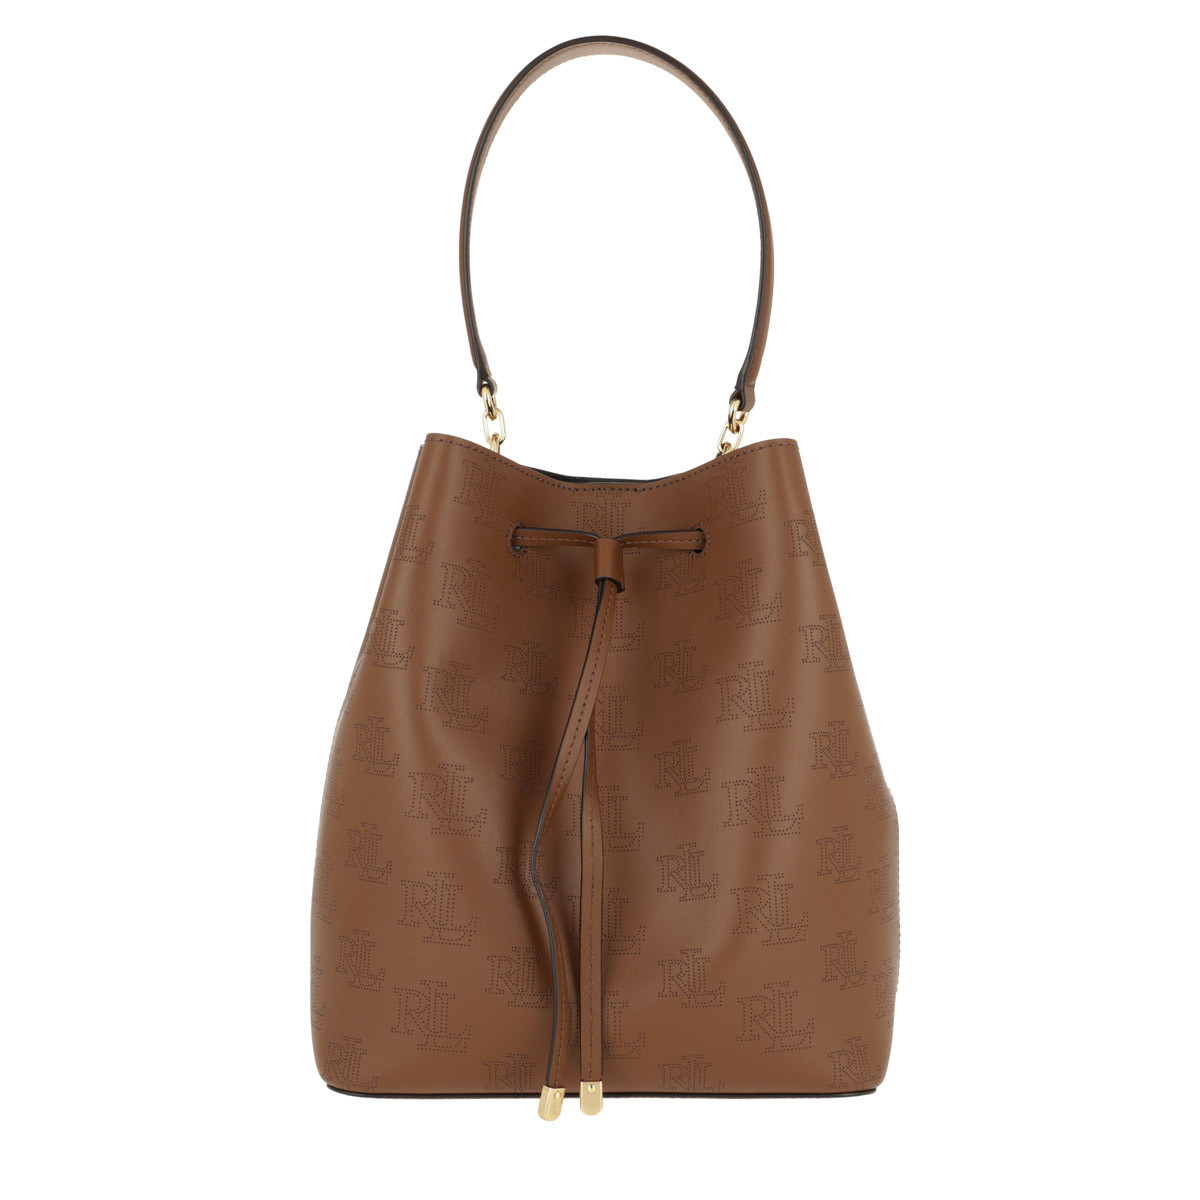 Lauren Ralph Lauren Beuteltasche - Debby Drawstring Medium Field Brown Black - in cognac - für Damen